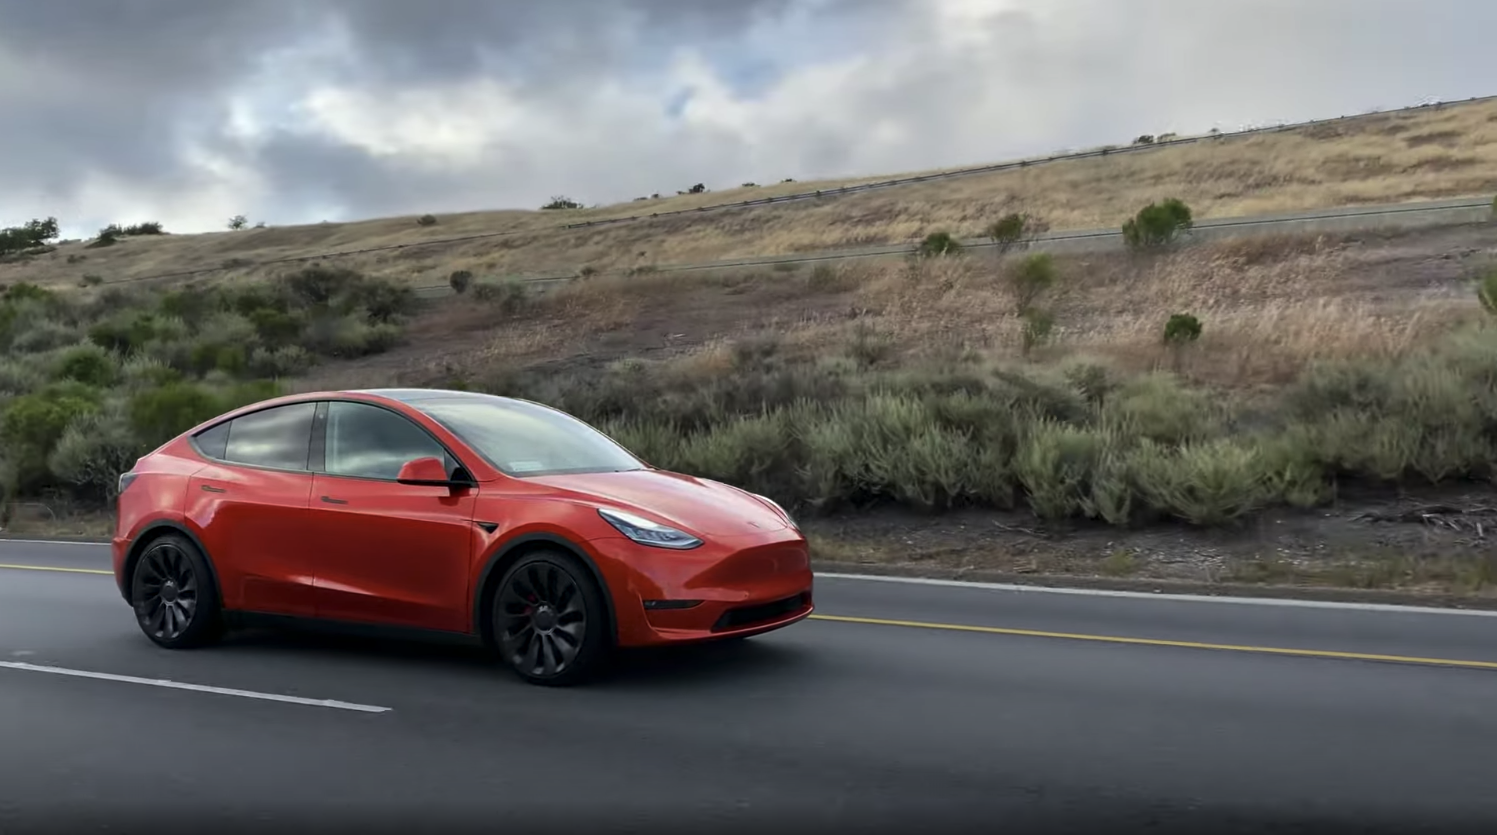 Kilowatts Model Y test 2